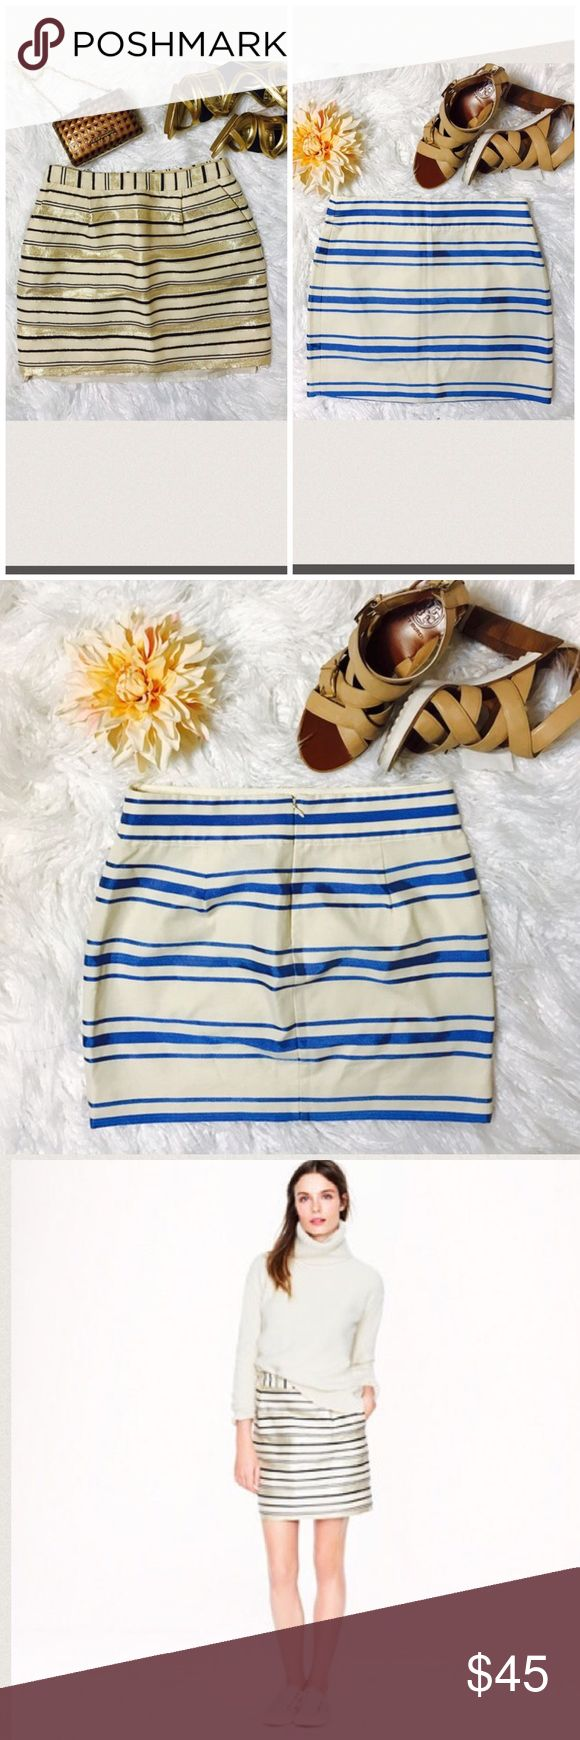 "J.Crew 2 in 1 J.Crew Striped. S75-This J.Crew Outlet skirt is a lovely jacquard in cerulean blue and white. The blue stripes provide a satiny sheen against the white canvas background. Sits at hip. Back zip. Unlined. Laid flat across @ waist: 14"", Length: 15"". 54% cotton, 46% Polyester. Machine wash cold, gently cycle. Tumble dry low.  S73-Metallic threads make everything more festive. Cotton/silk. Back zip. Slant pockets.Lined. Dry clean. Import. Laid flat across @ waist: 13.5"", Length…"